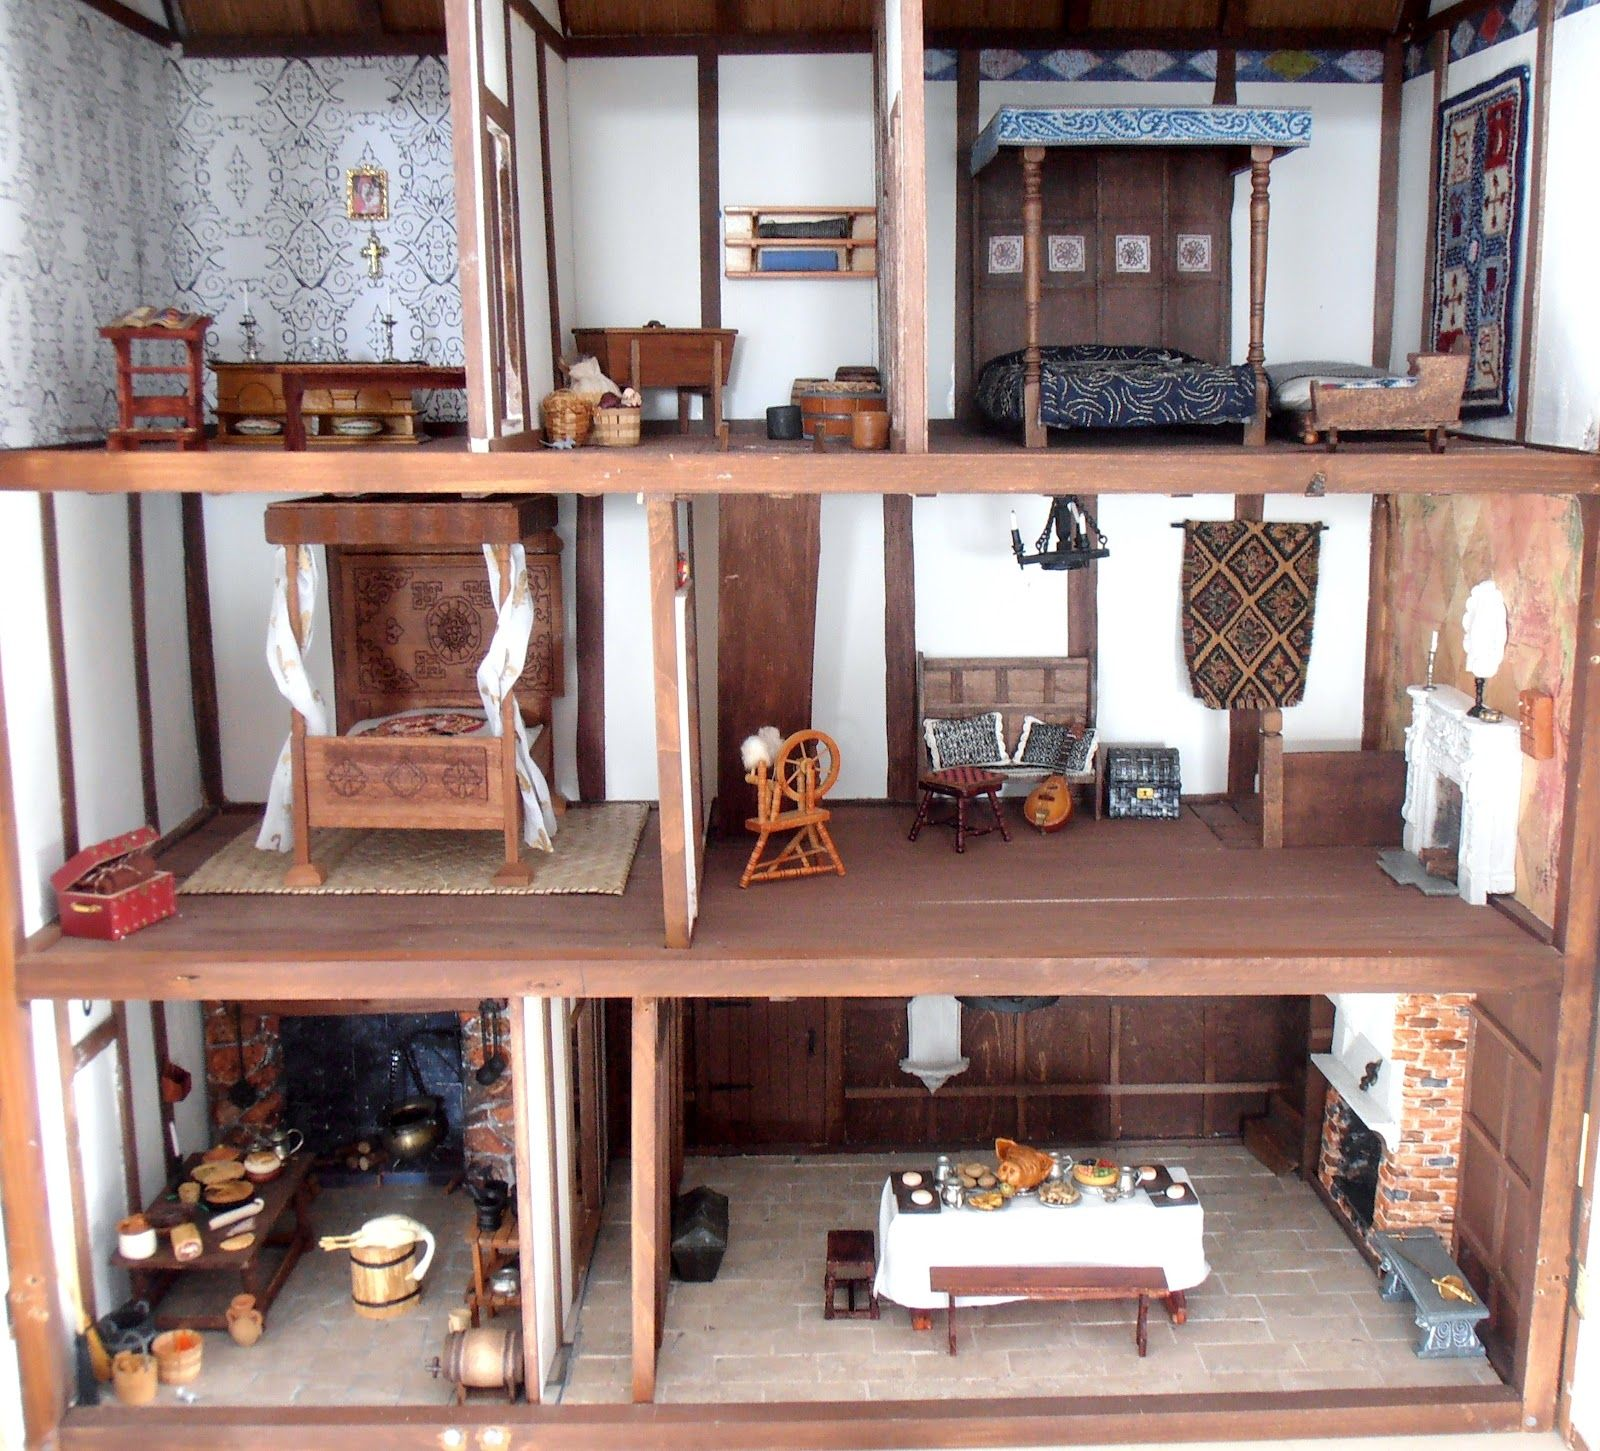 Elegant The Interior Of My Tudor Dolls House Here Is A View Of The Interior Of My  Tudor Dolls House. Kitchen, Screen Passage And Hall On The .